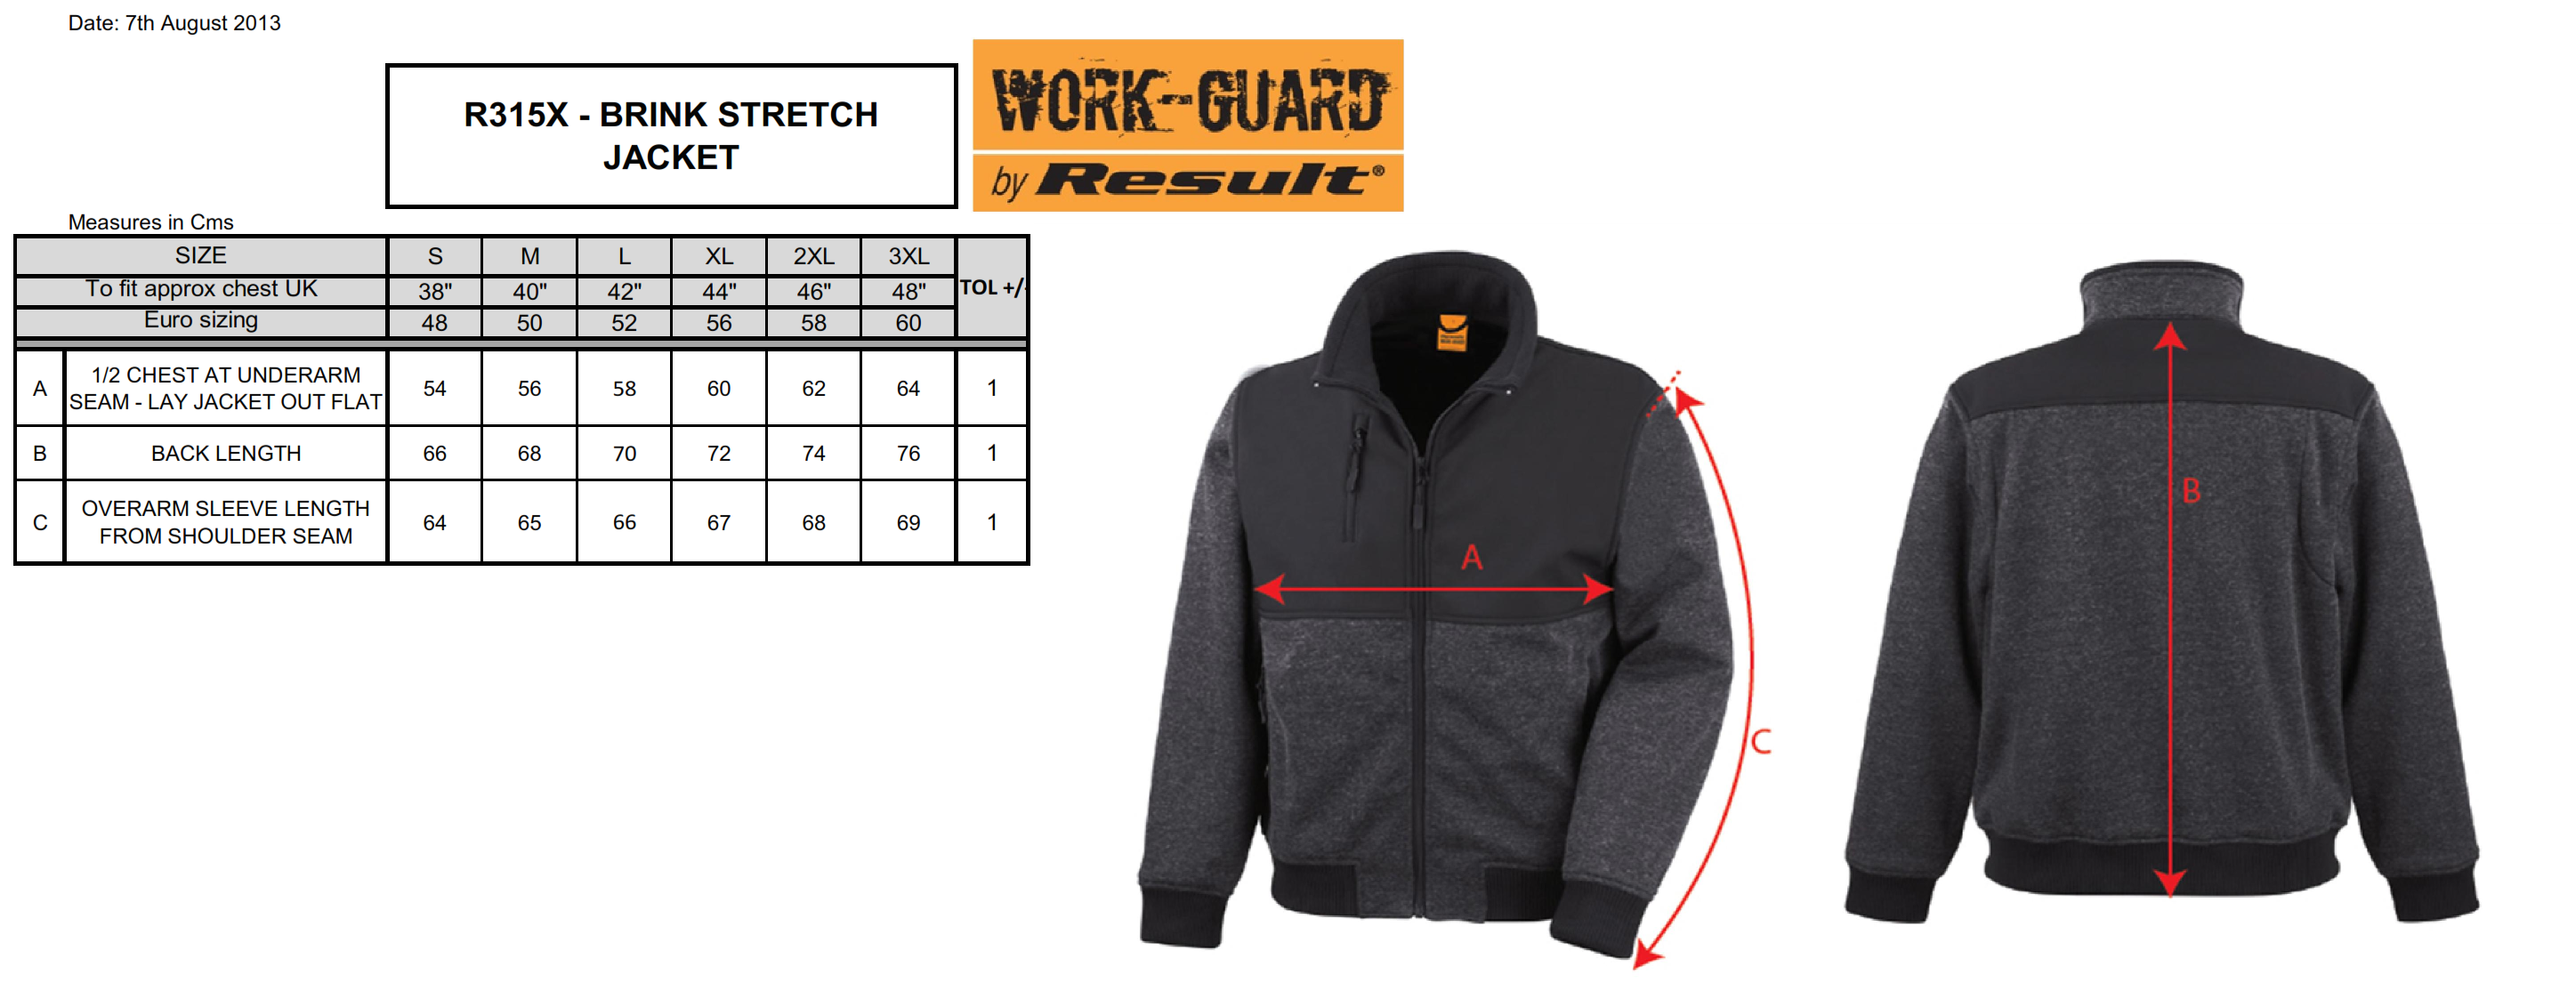 Result: Work-Guard Brink Stretch Jacket R315X